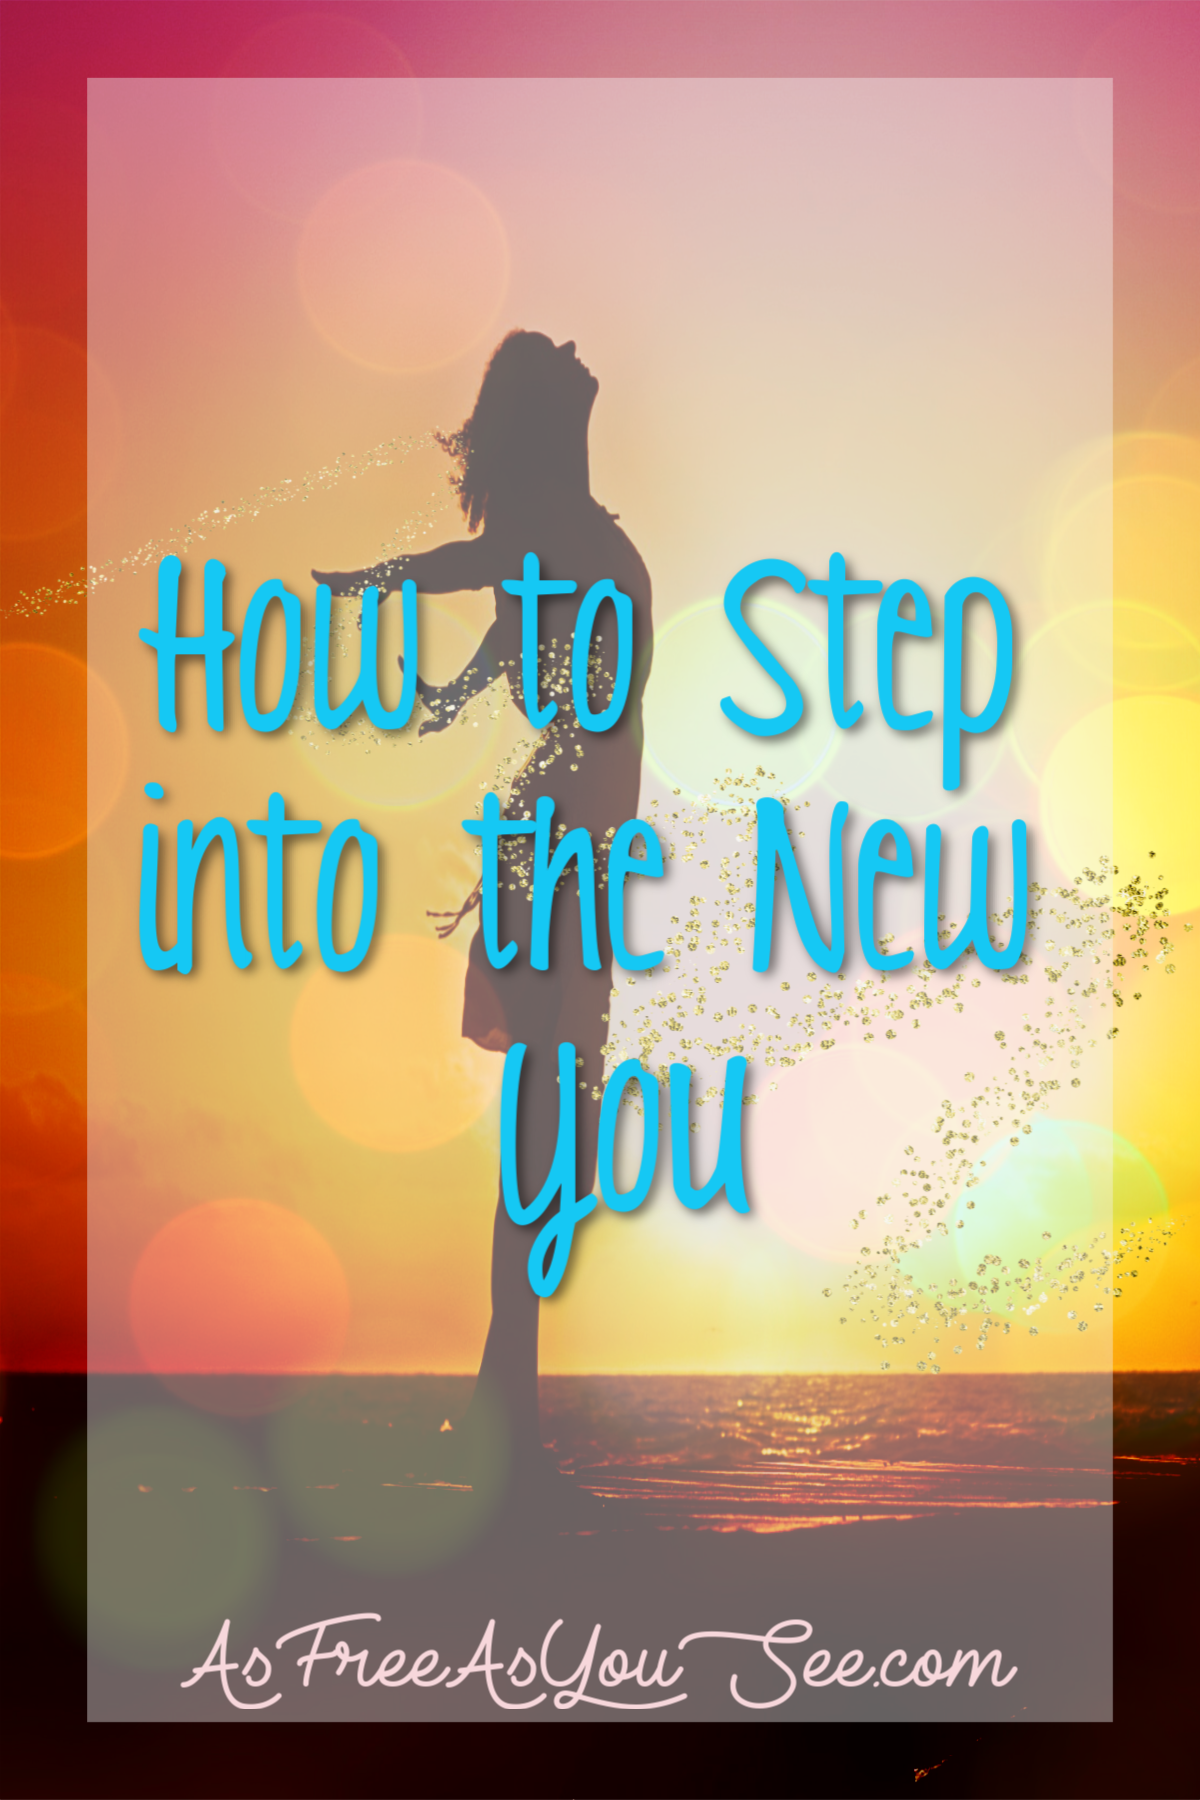 In this spiritually enlightened blog, learn the number one hack of letting go of your past self and step into your new self.  In this stage of transformation, there is an internal conflict, well all experience but there has to be a way to really step into the new you and let go of the past.  Learn how that's possible with this self-help blog.